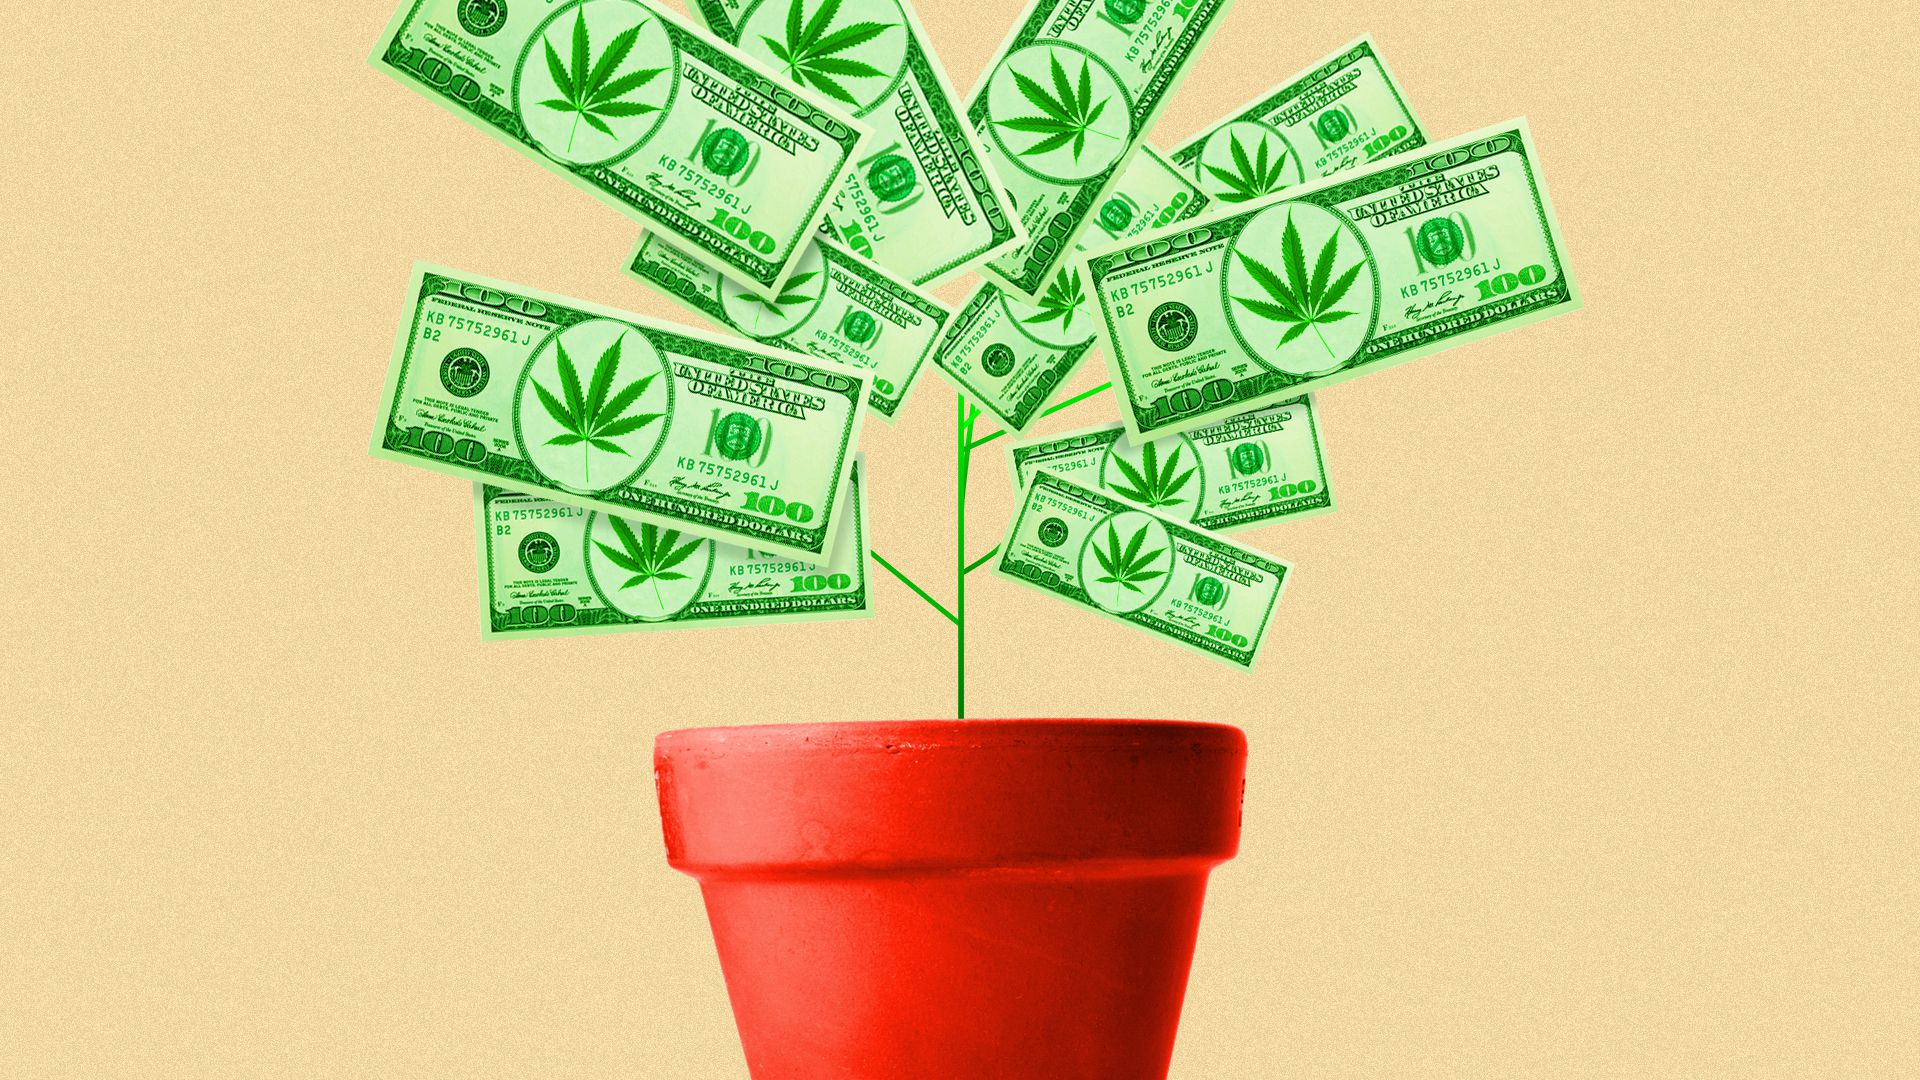 Betting on legalization, venture capitalists are investing record sums in marijuana startups